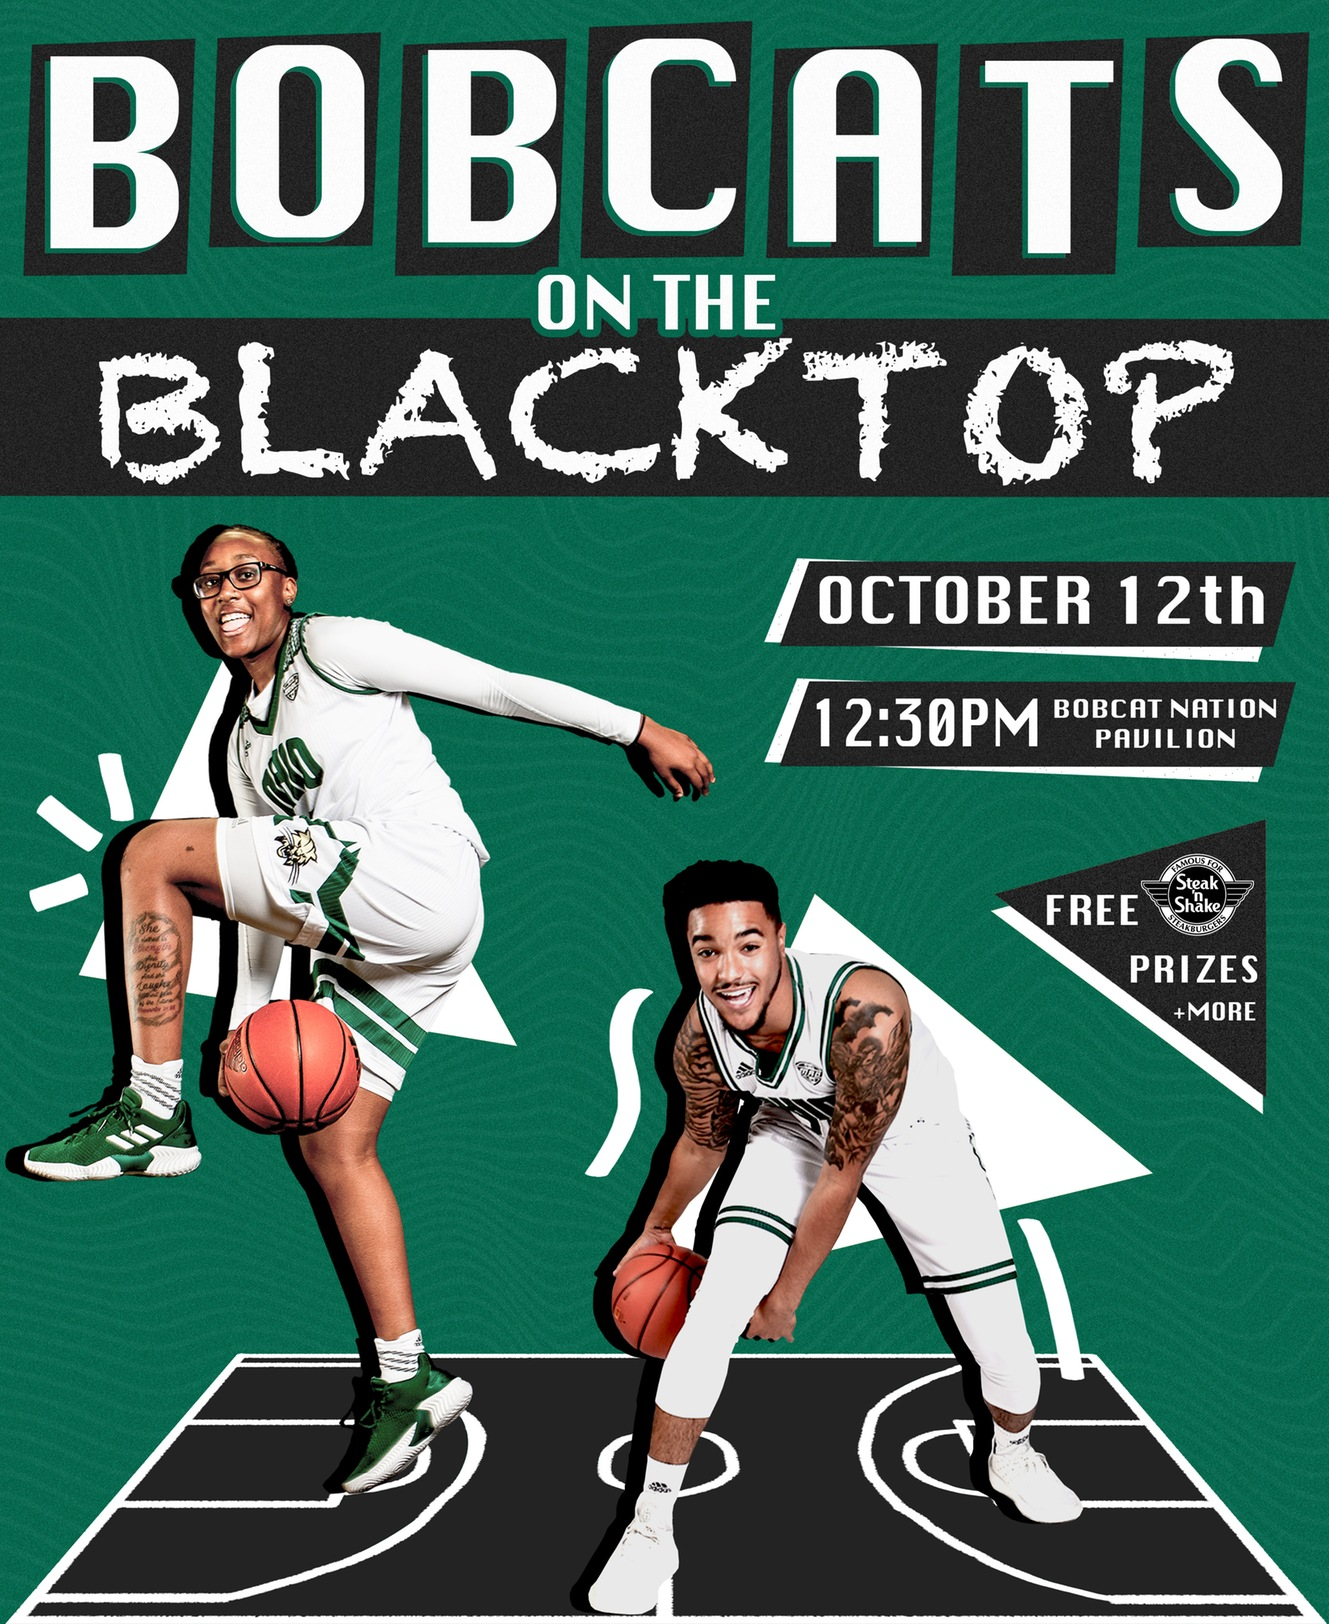 Ohio Basketball To Host Bobcats on the Blacktop